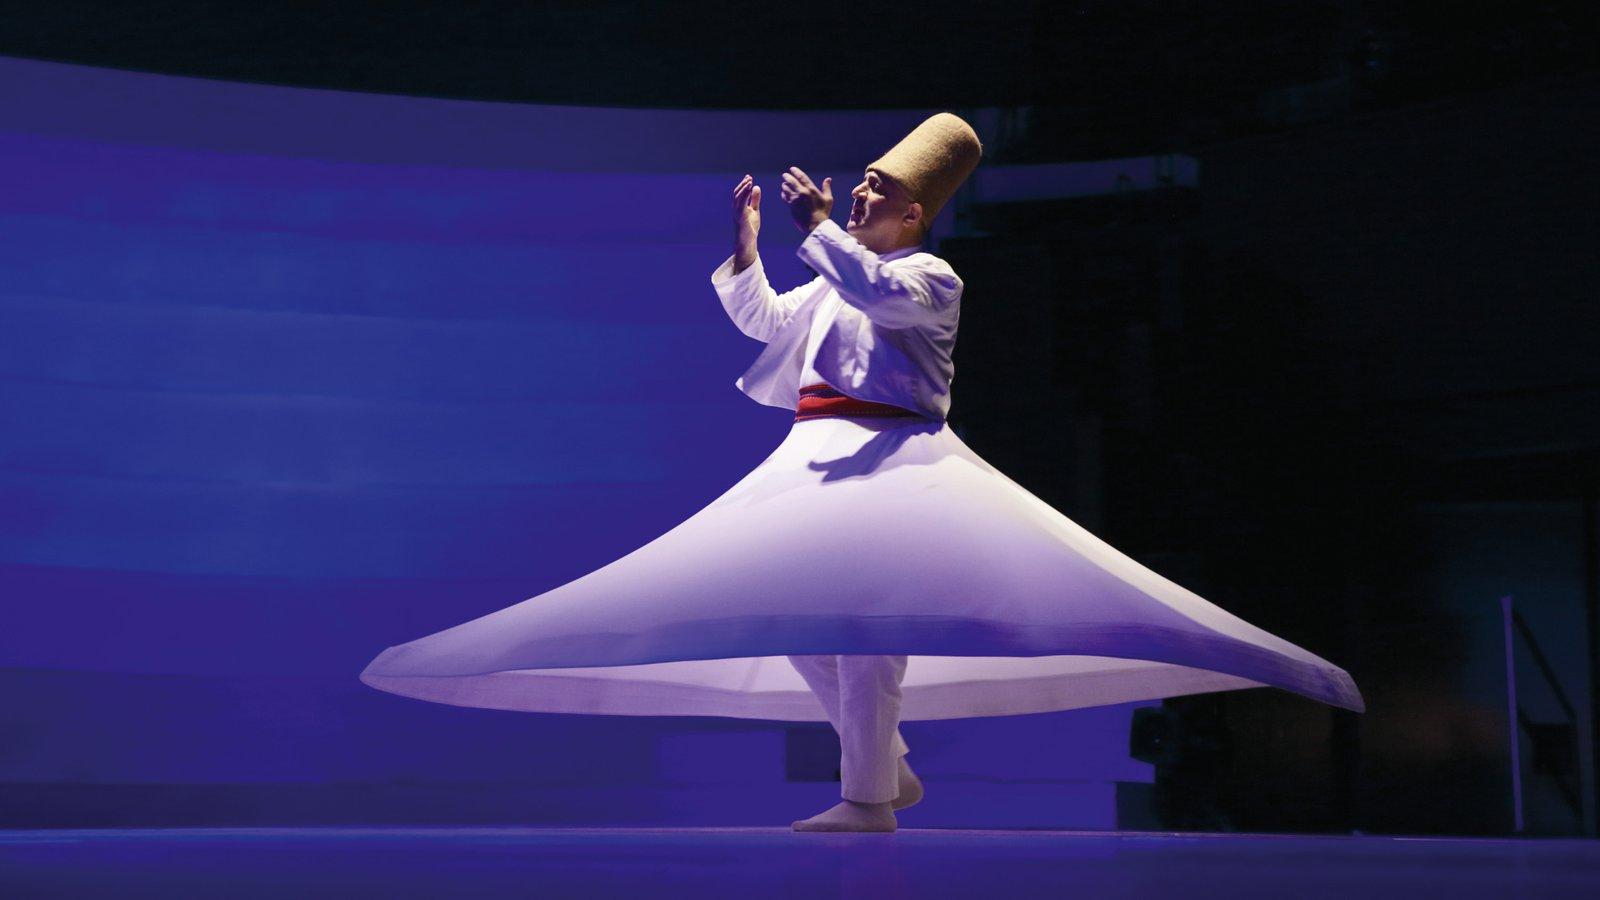 Noureddine Khourchid & The Dancing Dervishes of Damascus